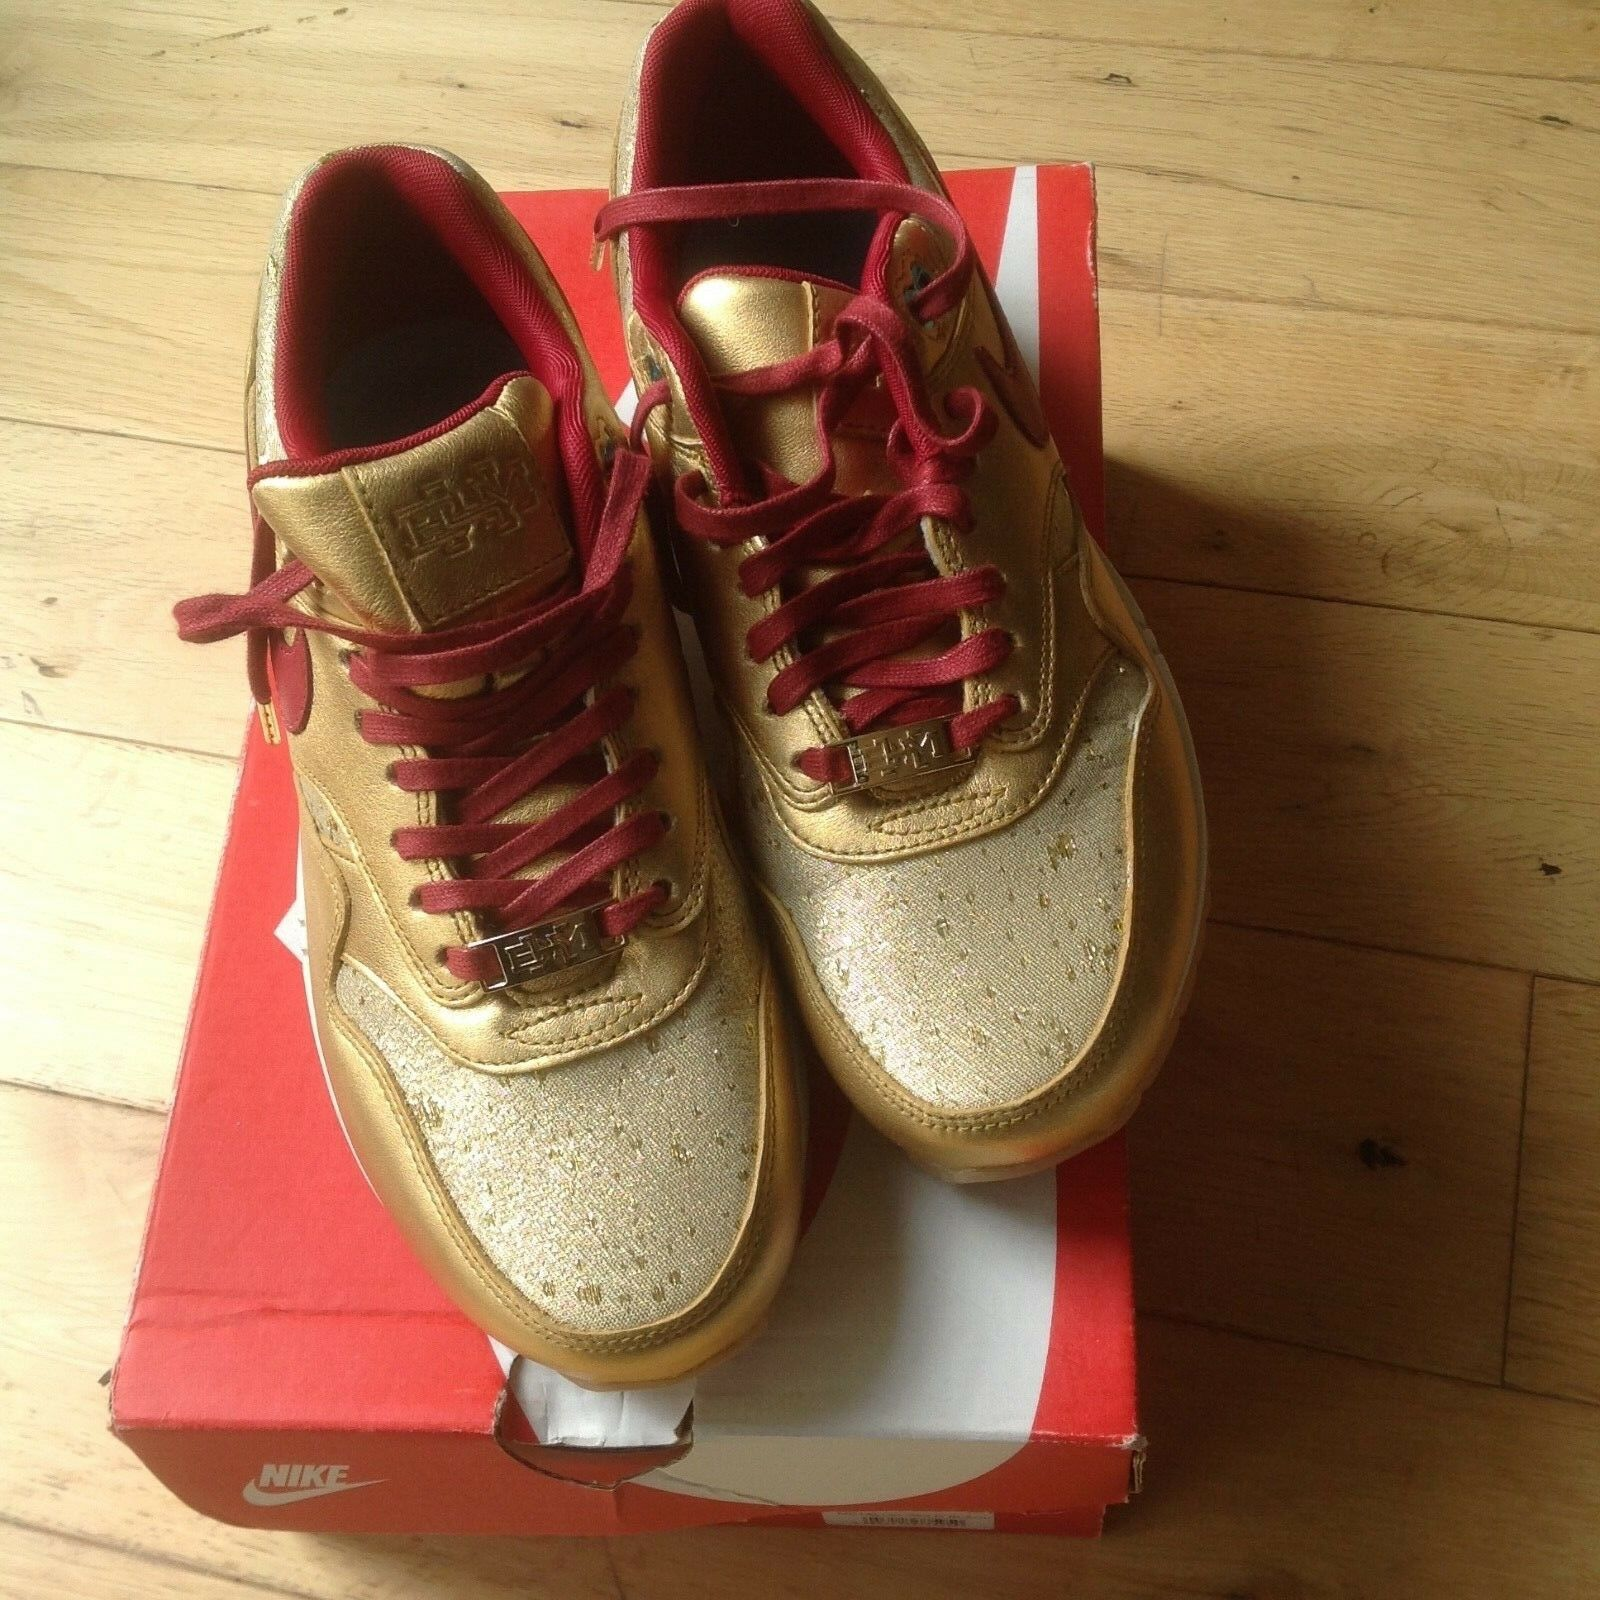 LADIES AIR MAX 1 METALLIC Gold Größe 5.5. -BRAND NEW IN BOX